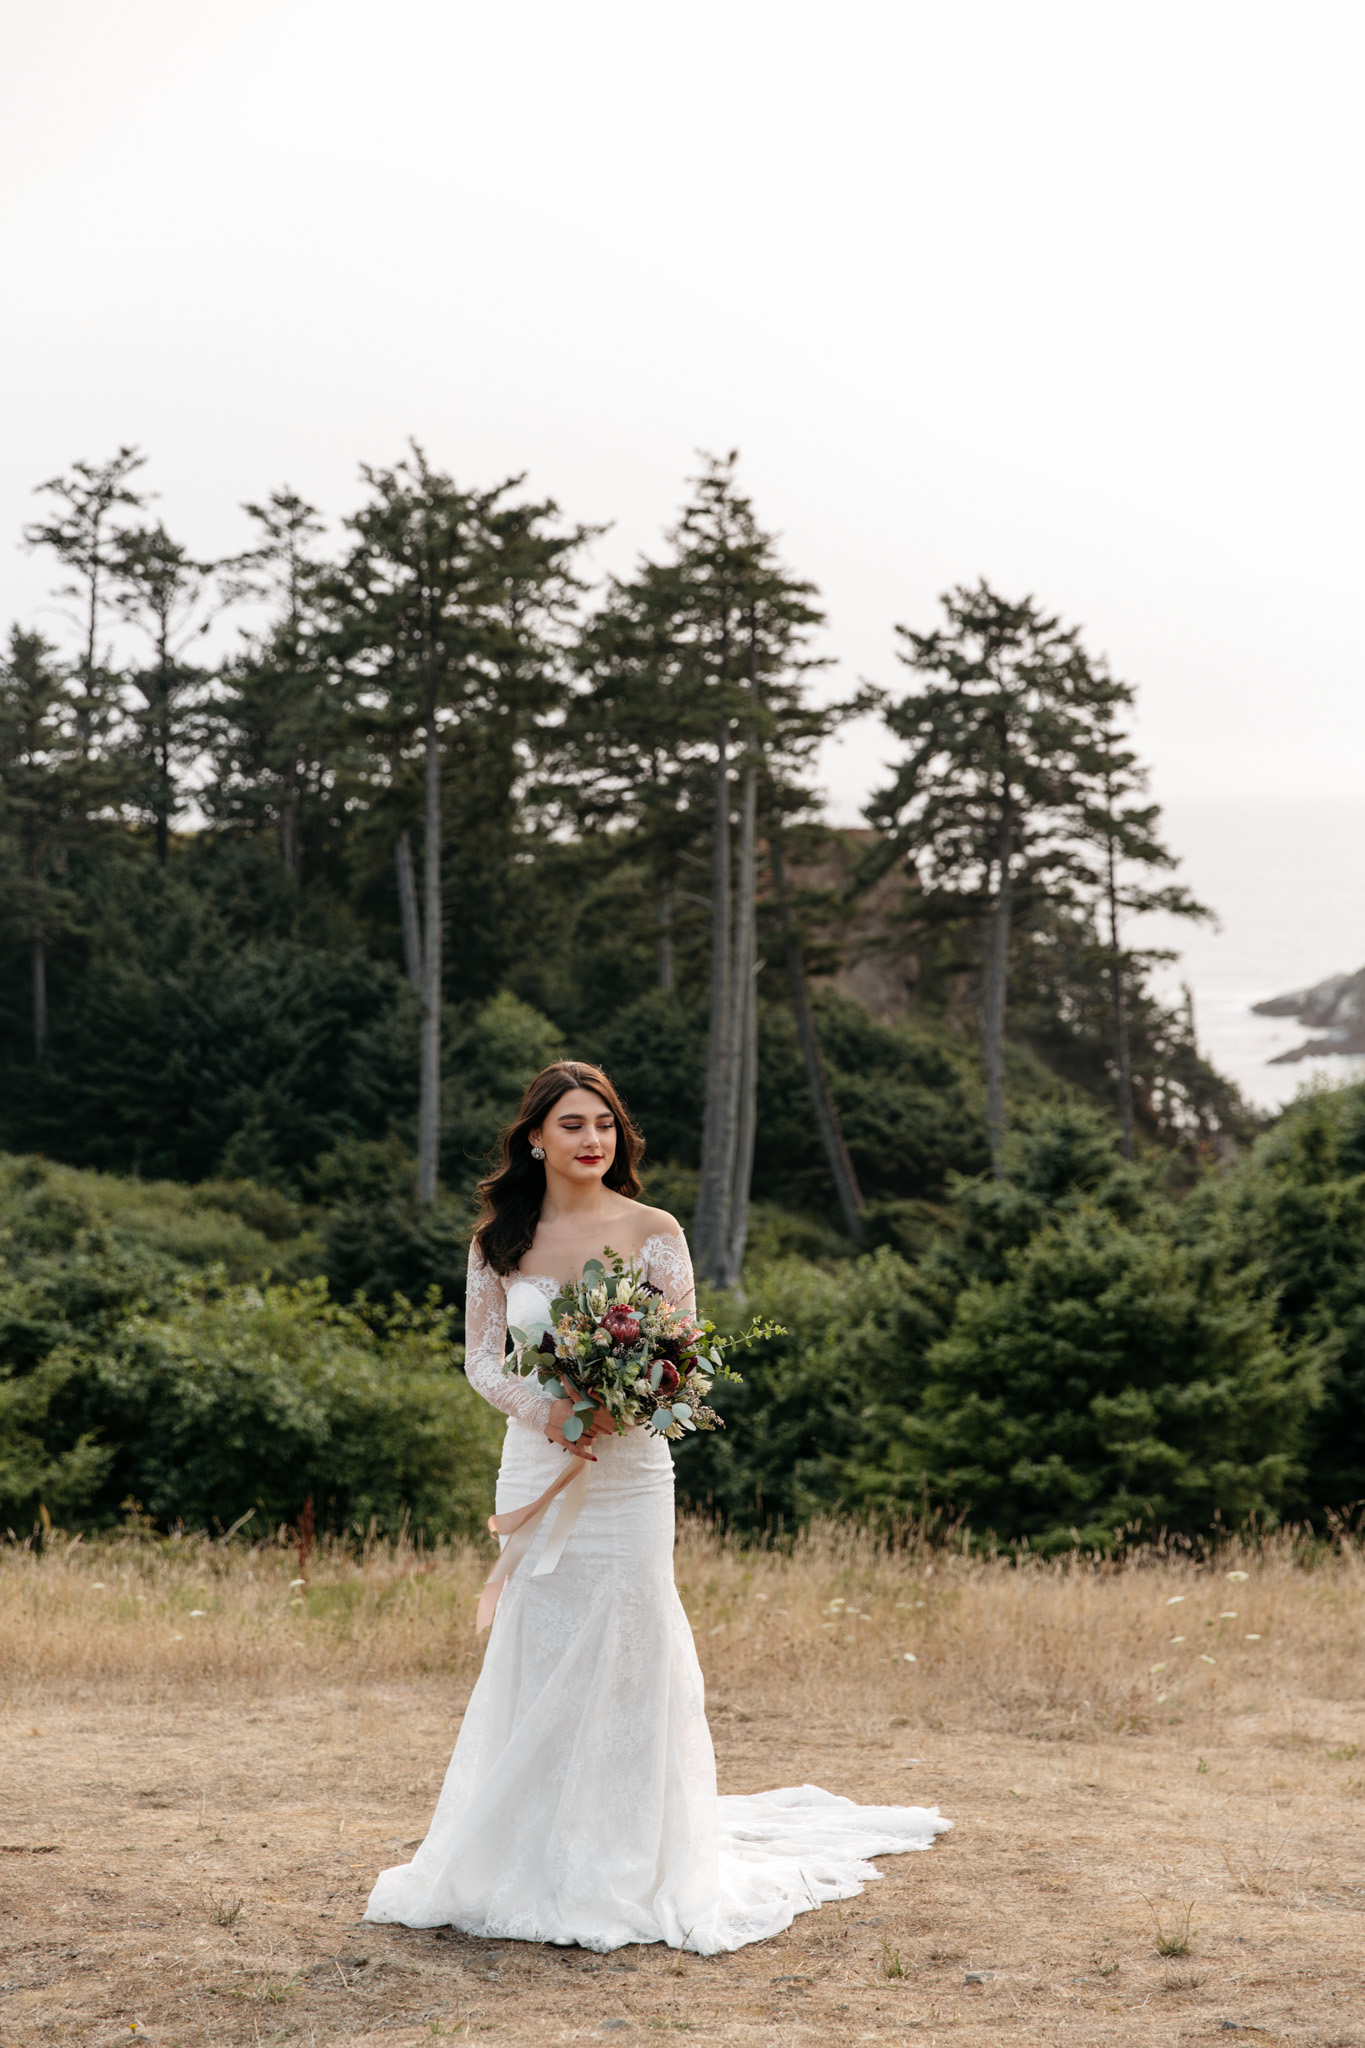 Summer Elopement at Cannon Beach Oregon with Brittney Hyatt Photography. Cannon Beach Oregon Wedding. Portland Oregon Elopement. Portland Oregon intimate wedding. Ecola State Park wedding. Ecola State Park Elopement. Ecola State Park intimate wedding. Oregon Coast Elopement. Oregon Coast intimate wedding. PNW costal elopement. PNW intimate costal wedding.